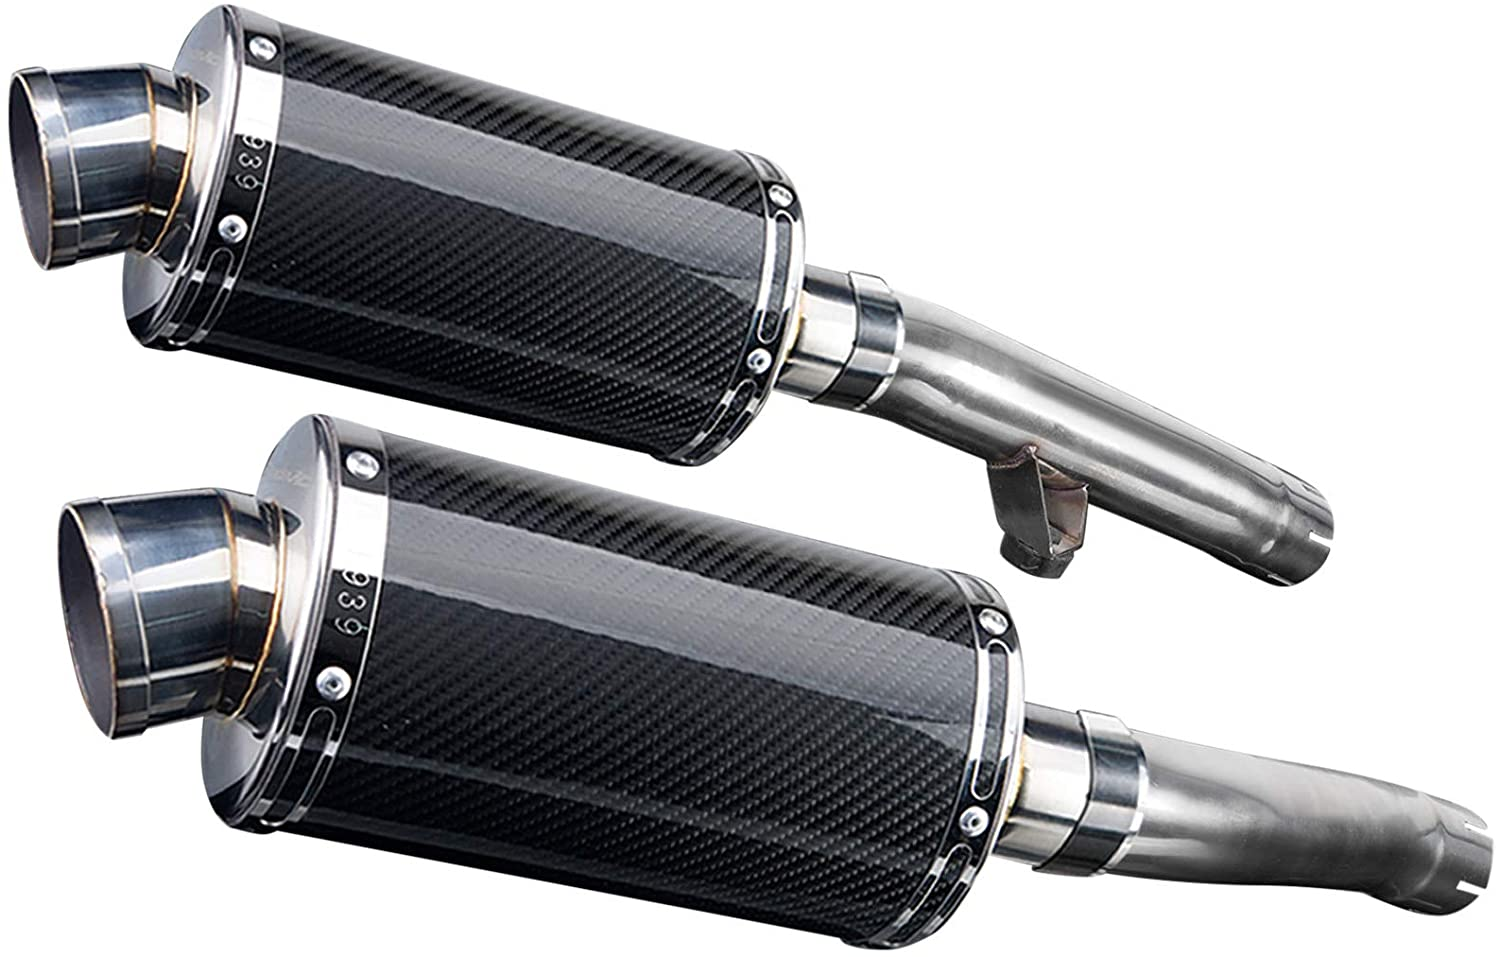 Delkevic Aftermarket Slip On compatible with Yamaha FJ1200 3CV DS70 9